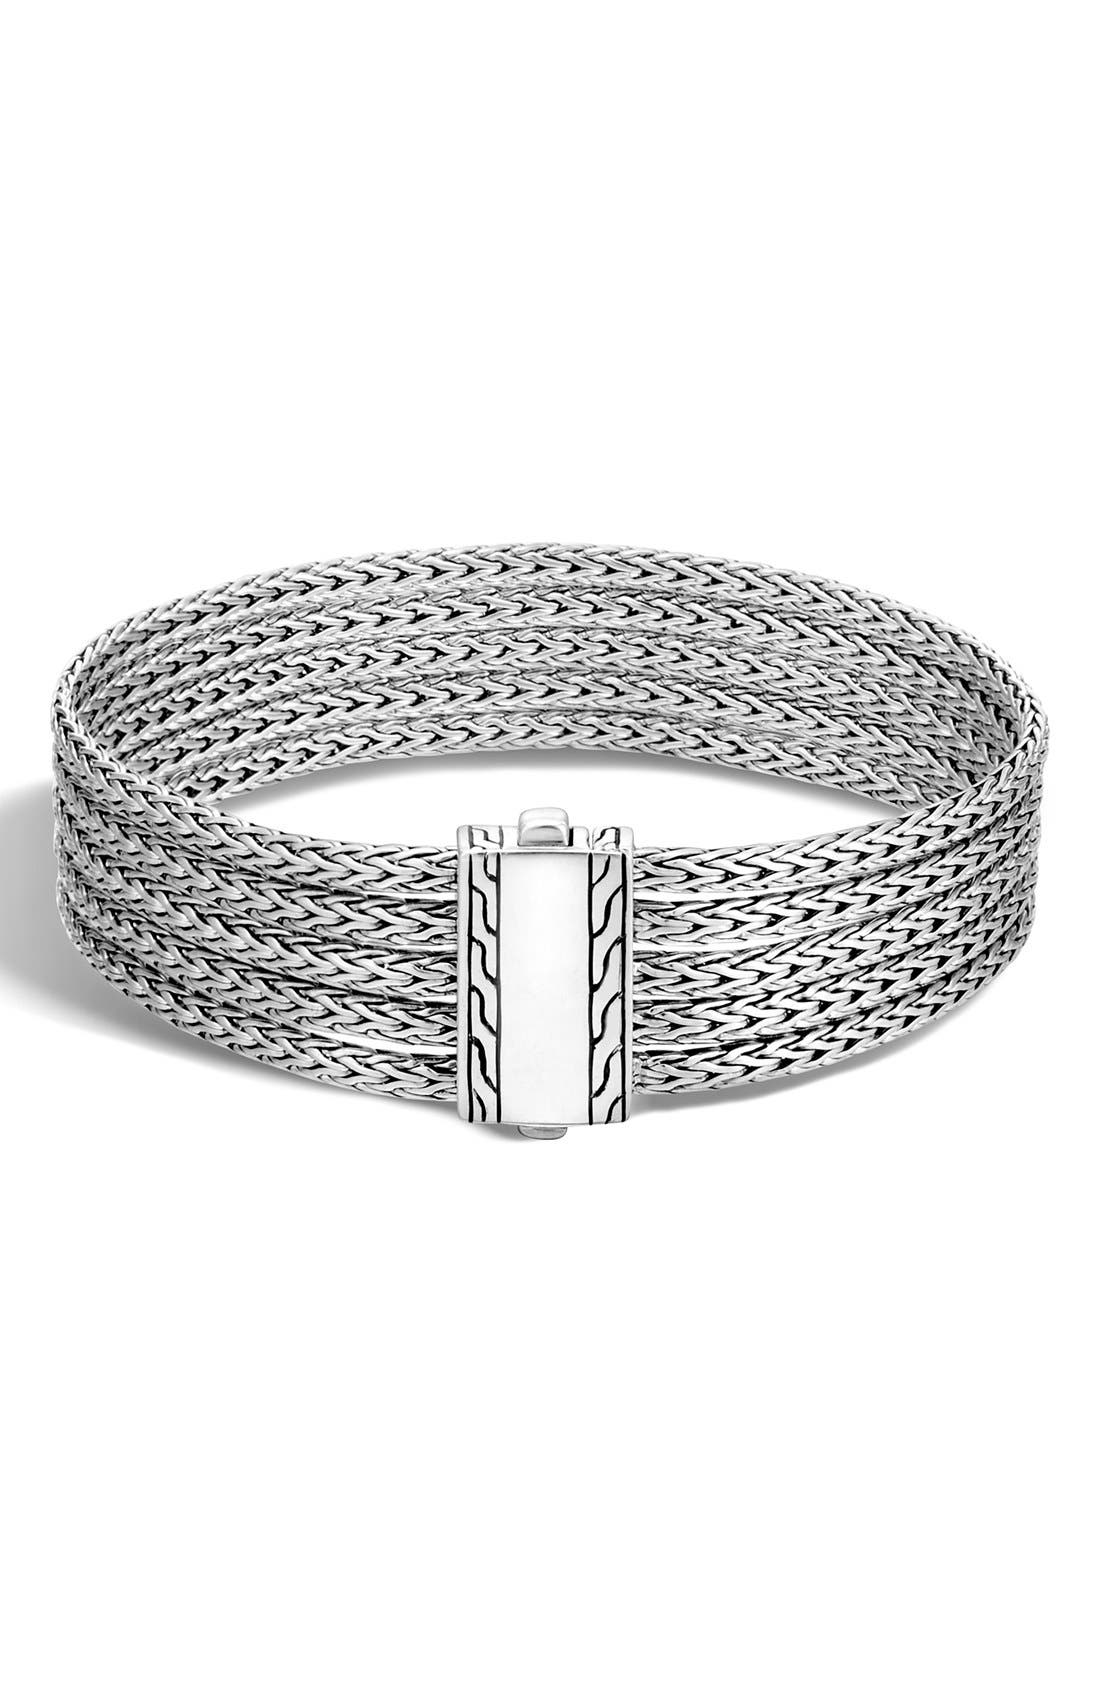 Alternate Image 1 Selected - John Hardy 'Classic Chain' Five Row Bracelet